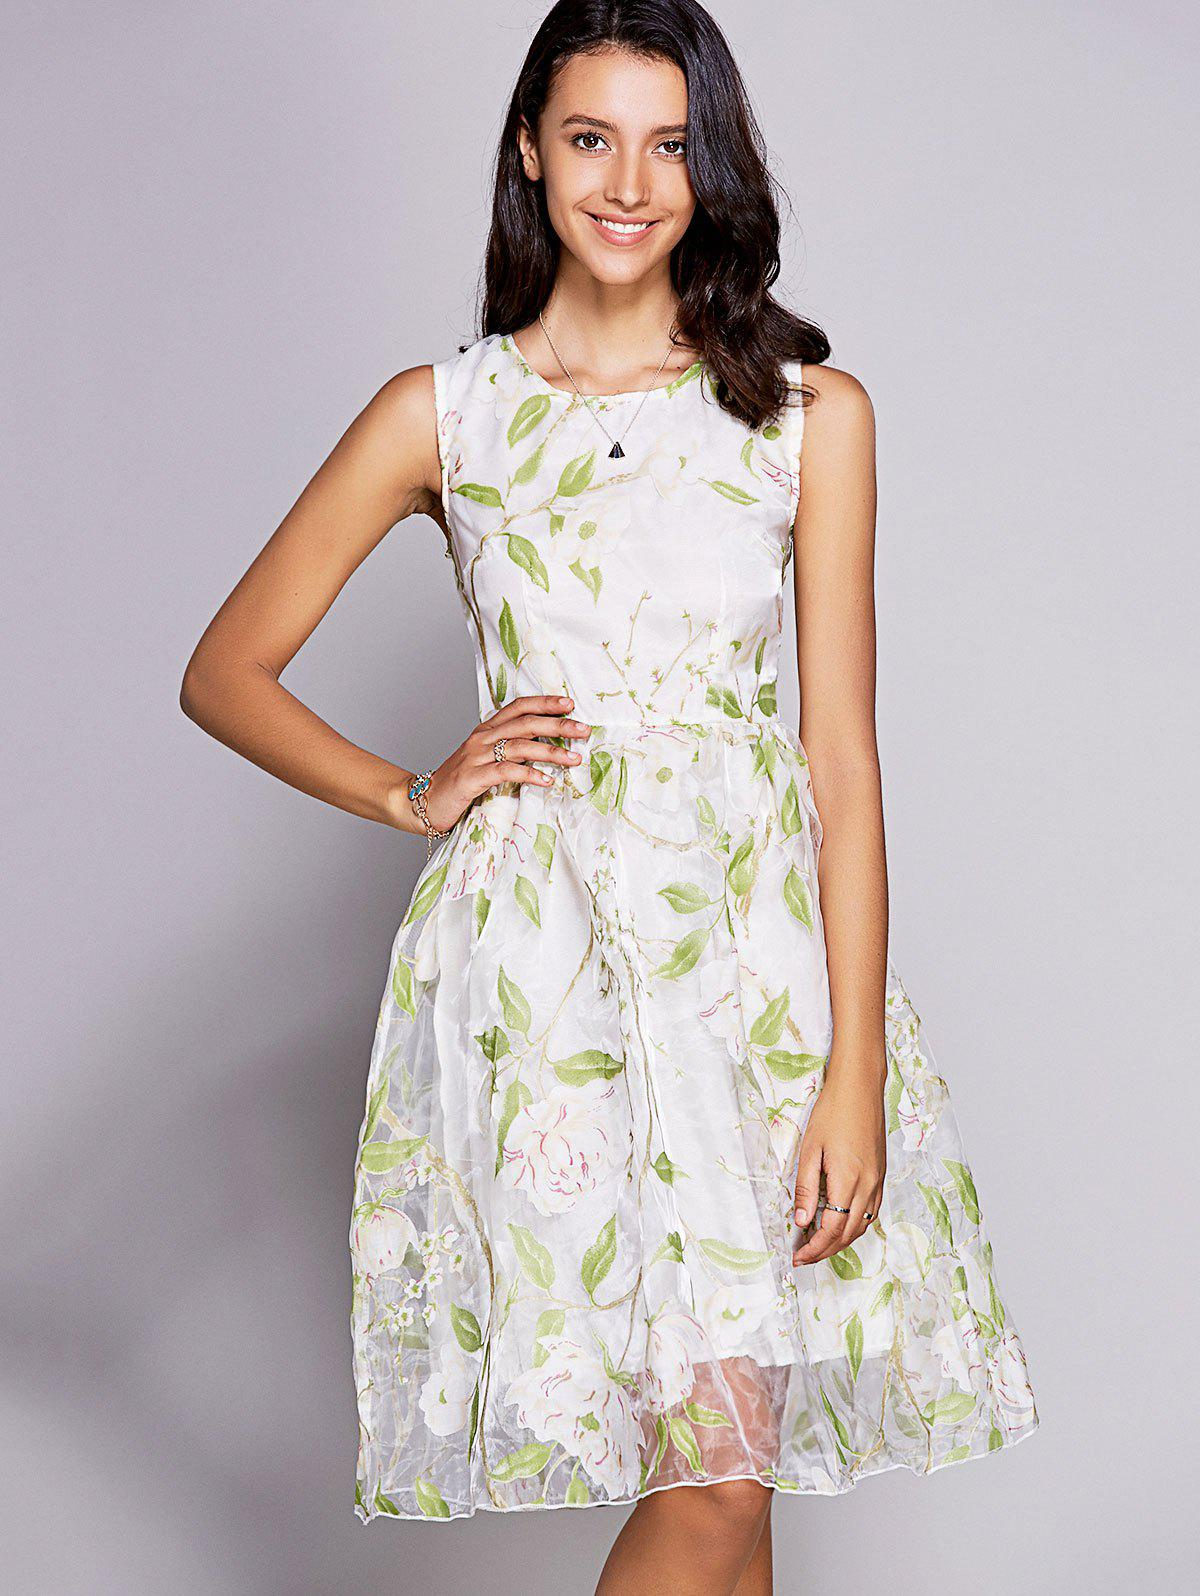 Elegant Jewel Neck Sleeveless Floral Print Organza Dress For Women - LIGHT GREEN 2XL